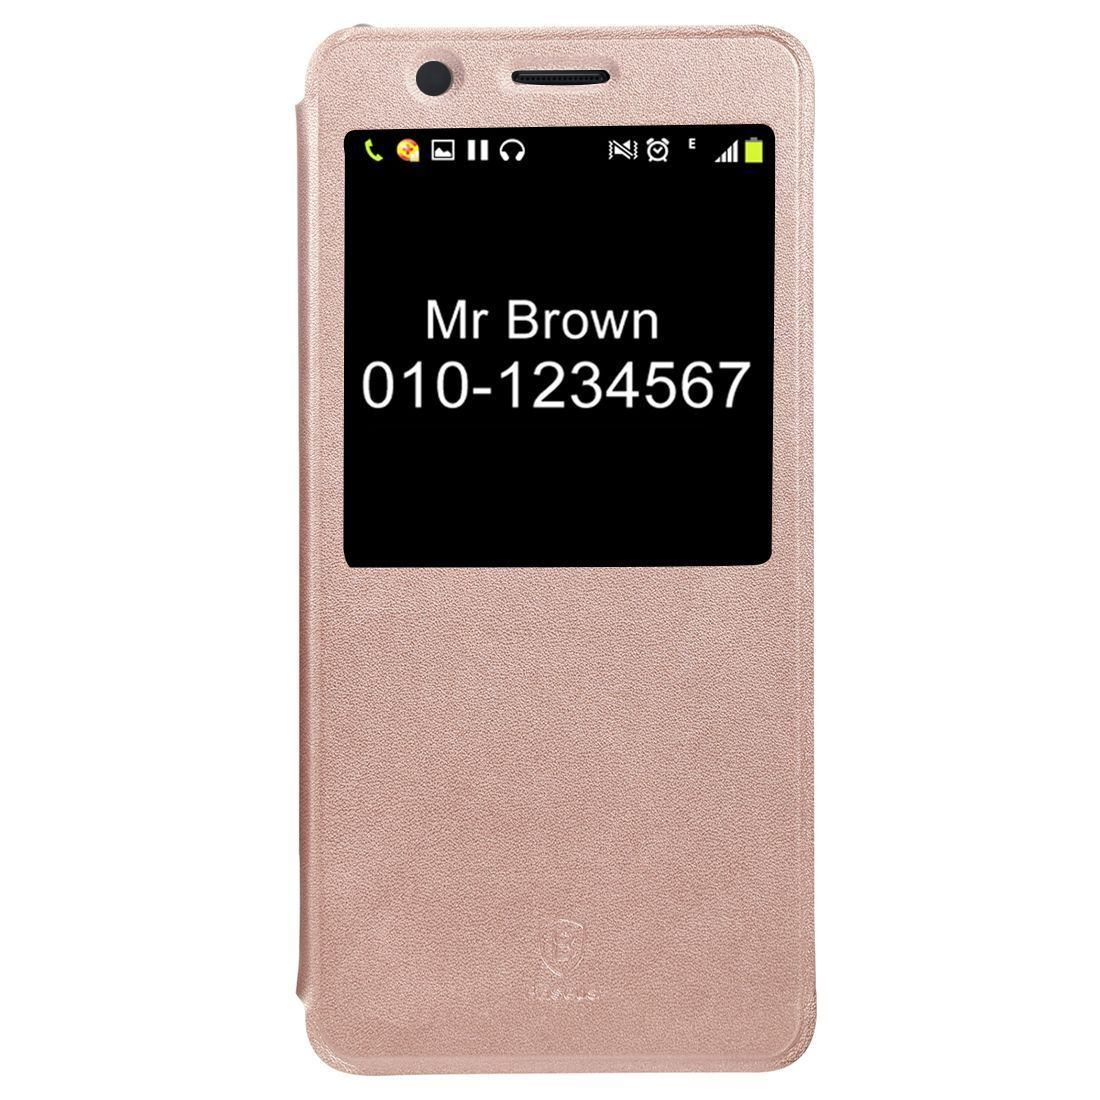 For Samsung Galaxy Note FE Case,Baseus Leather Caller ID Display Cover,Gold